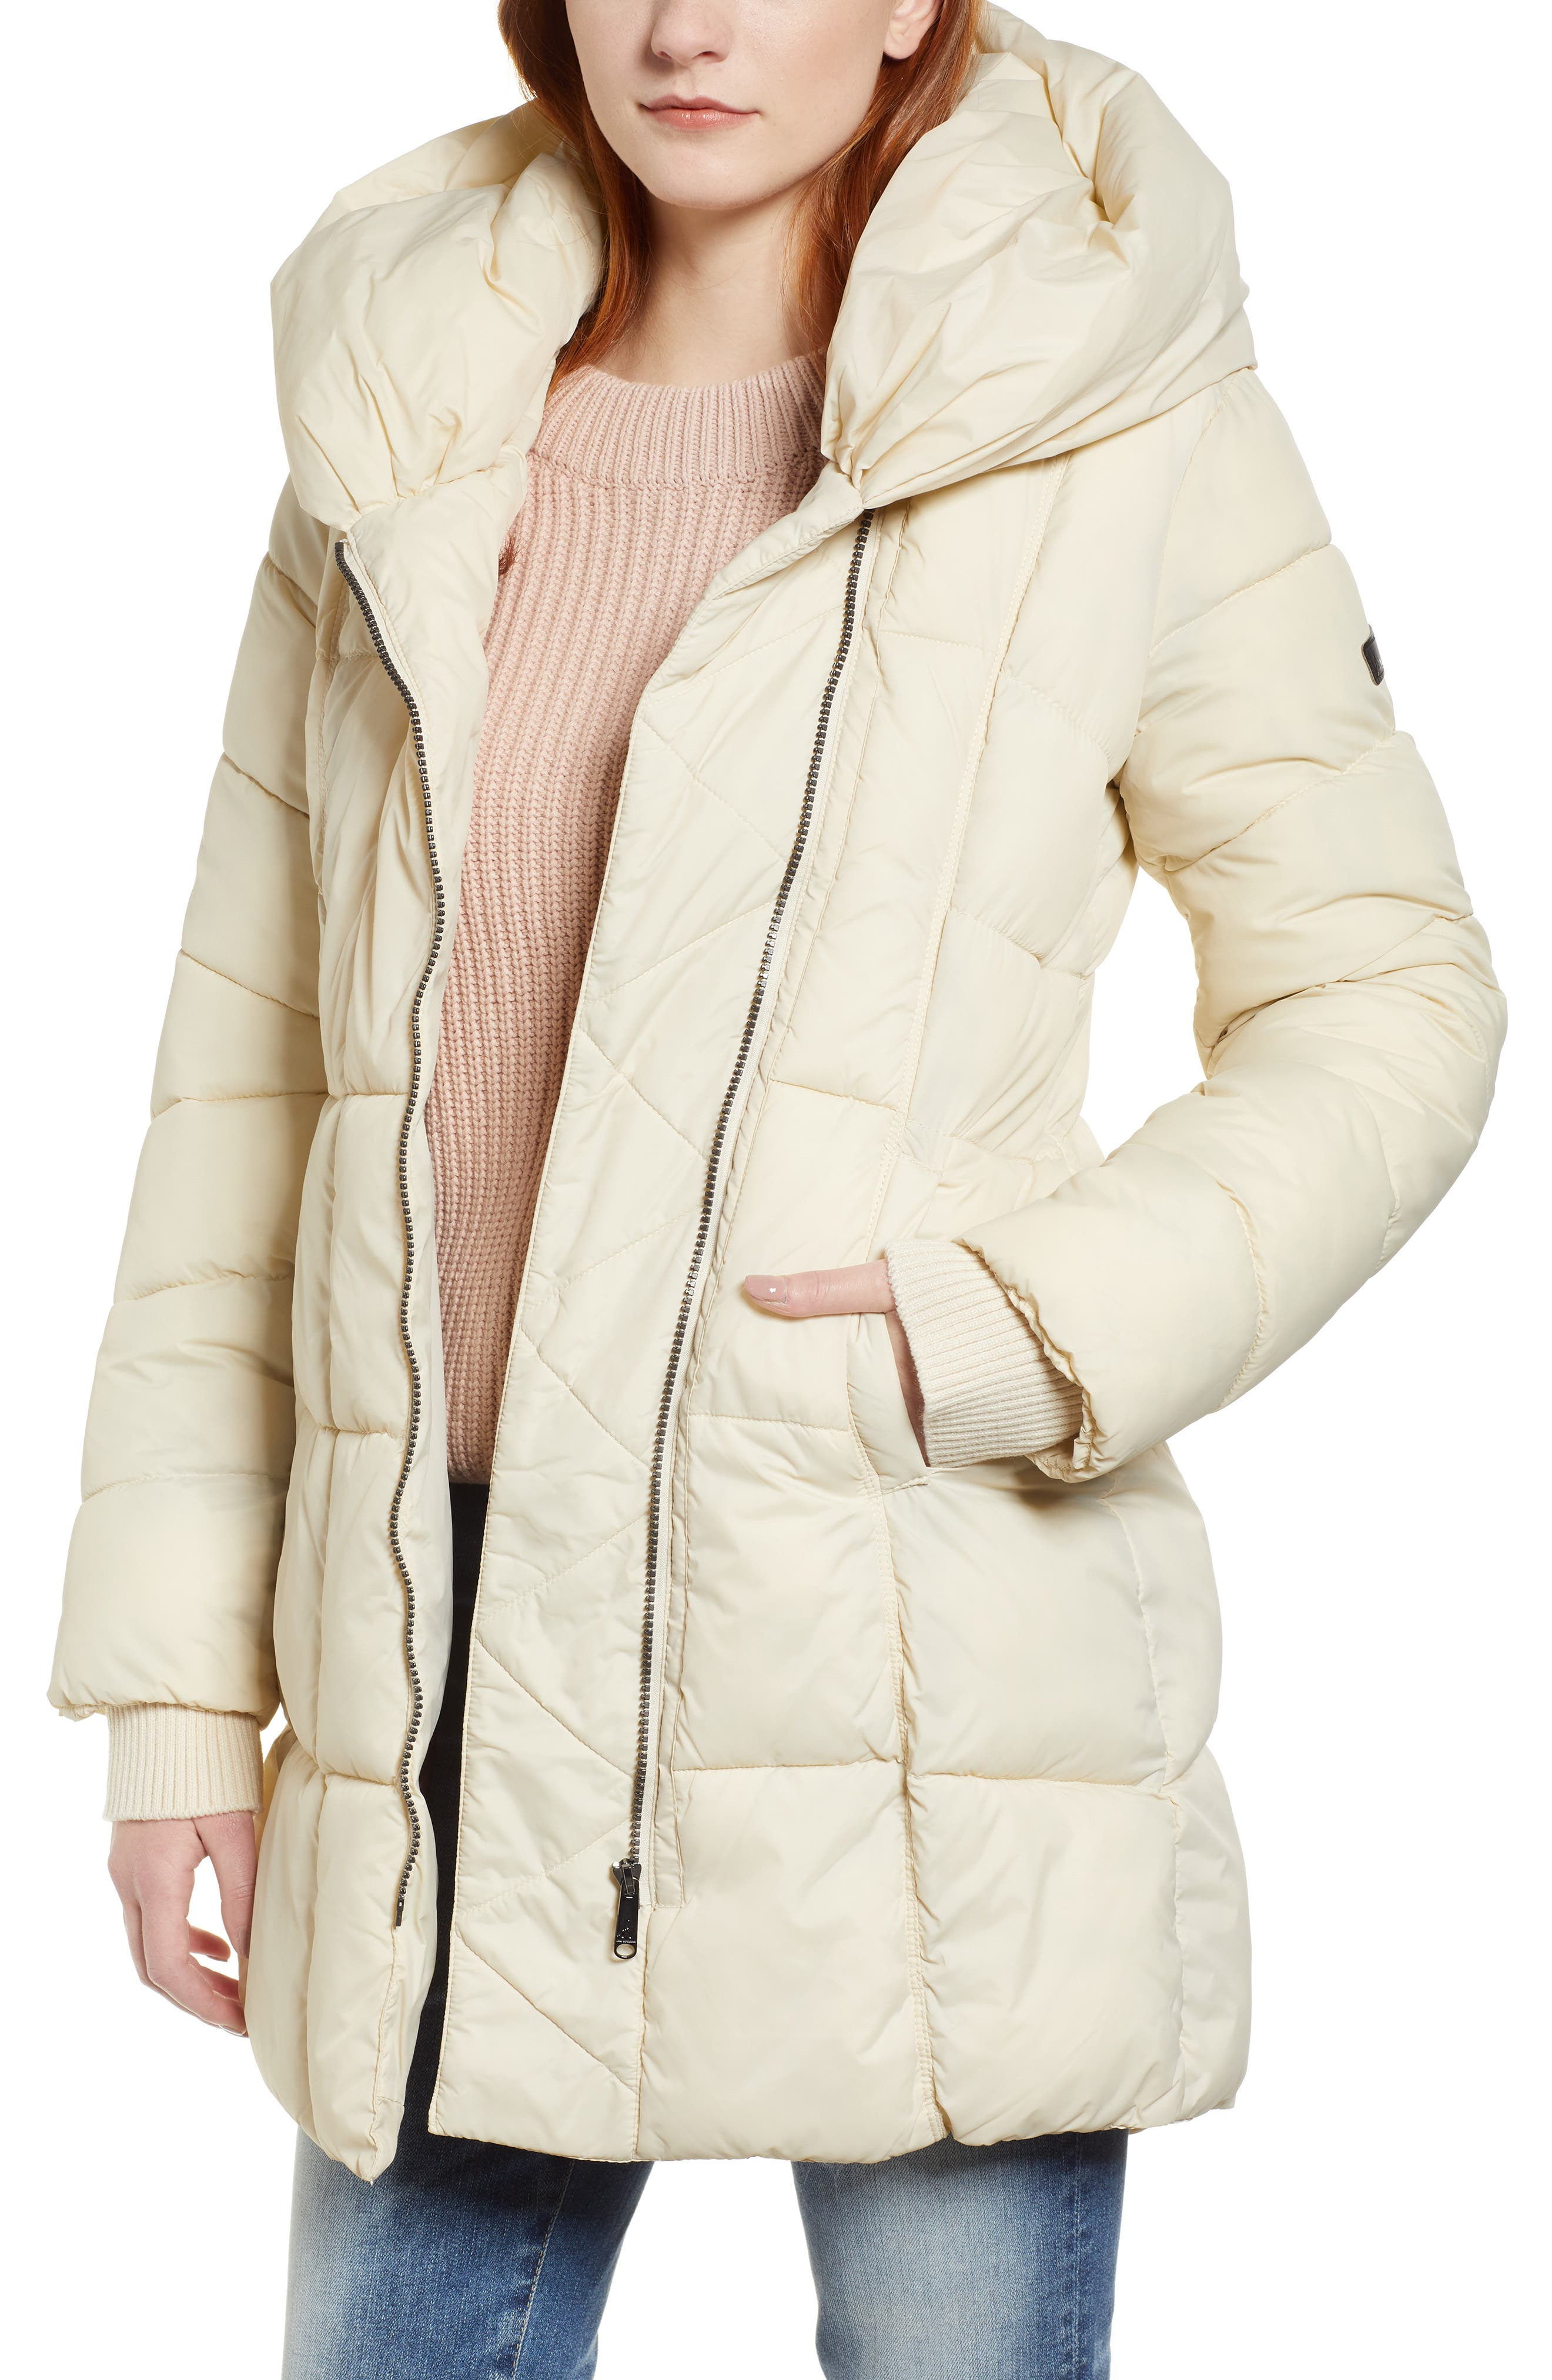 Pillow Collar Puffer Coat,                         Main,                         color, IVORY